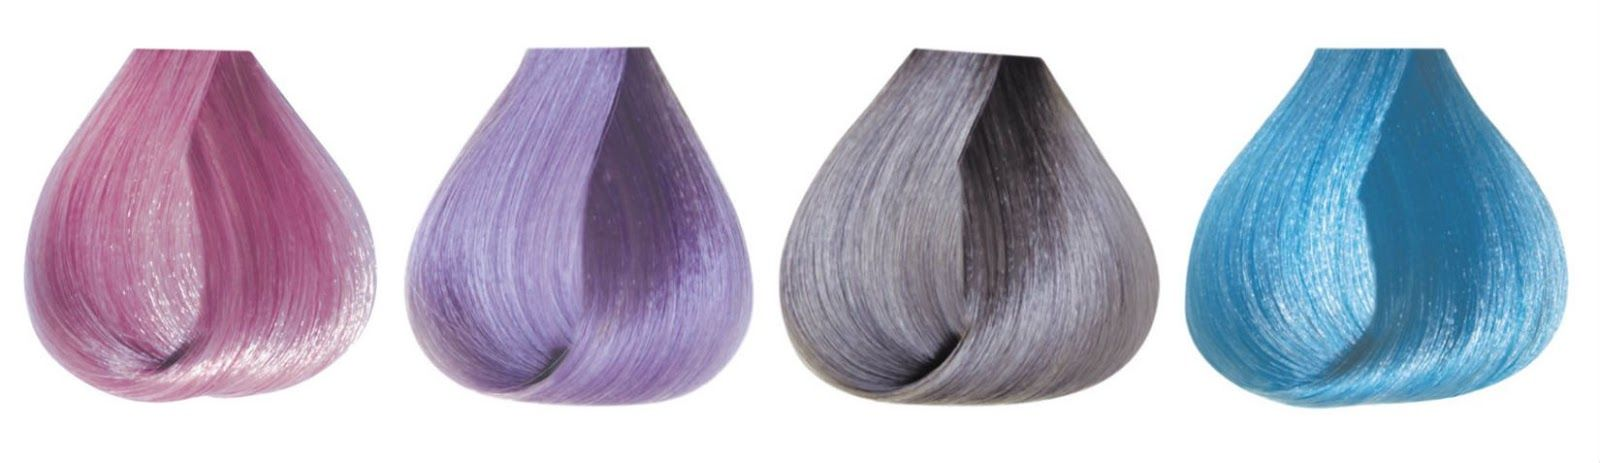 Ion Color Brilliance Hair Dye Swatches Hair Pinterest Ion